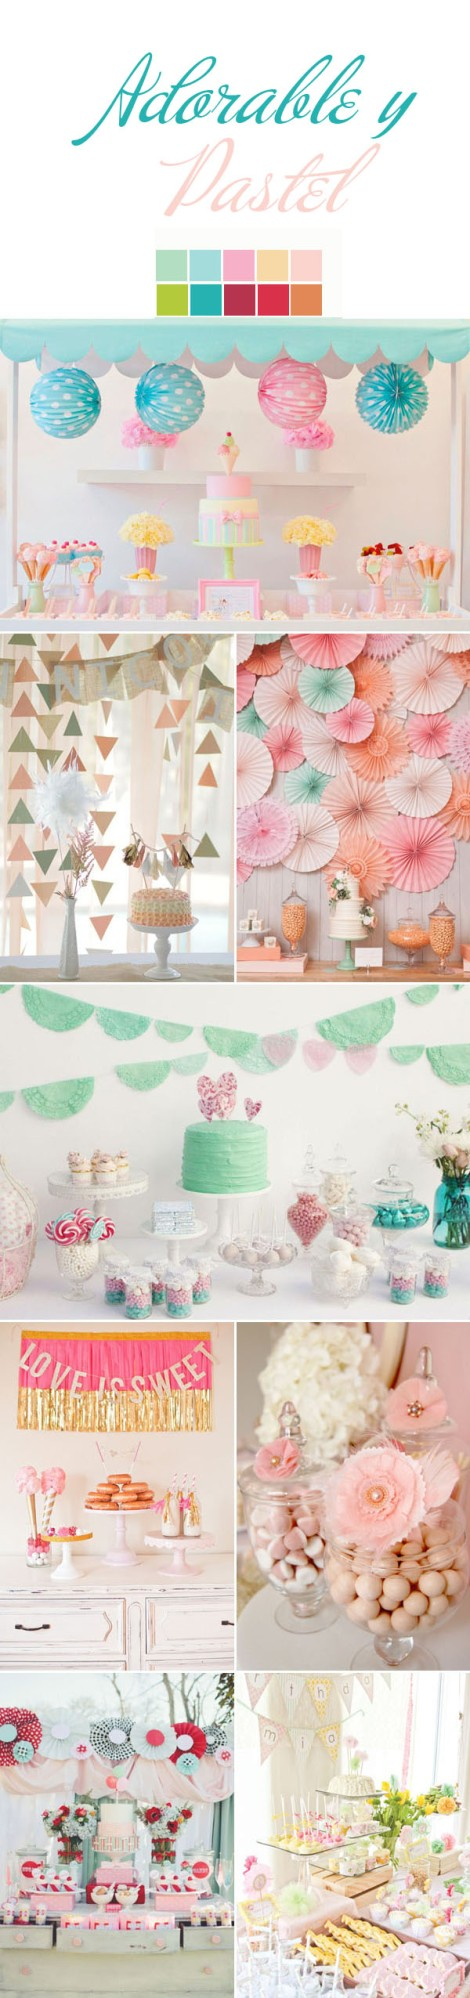 adorable-pastel-lime-pink-blush-peach-baby-blue-red-wedding-dessert-table-ideas (1)